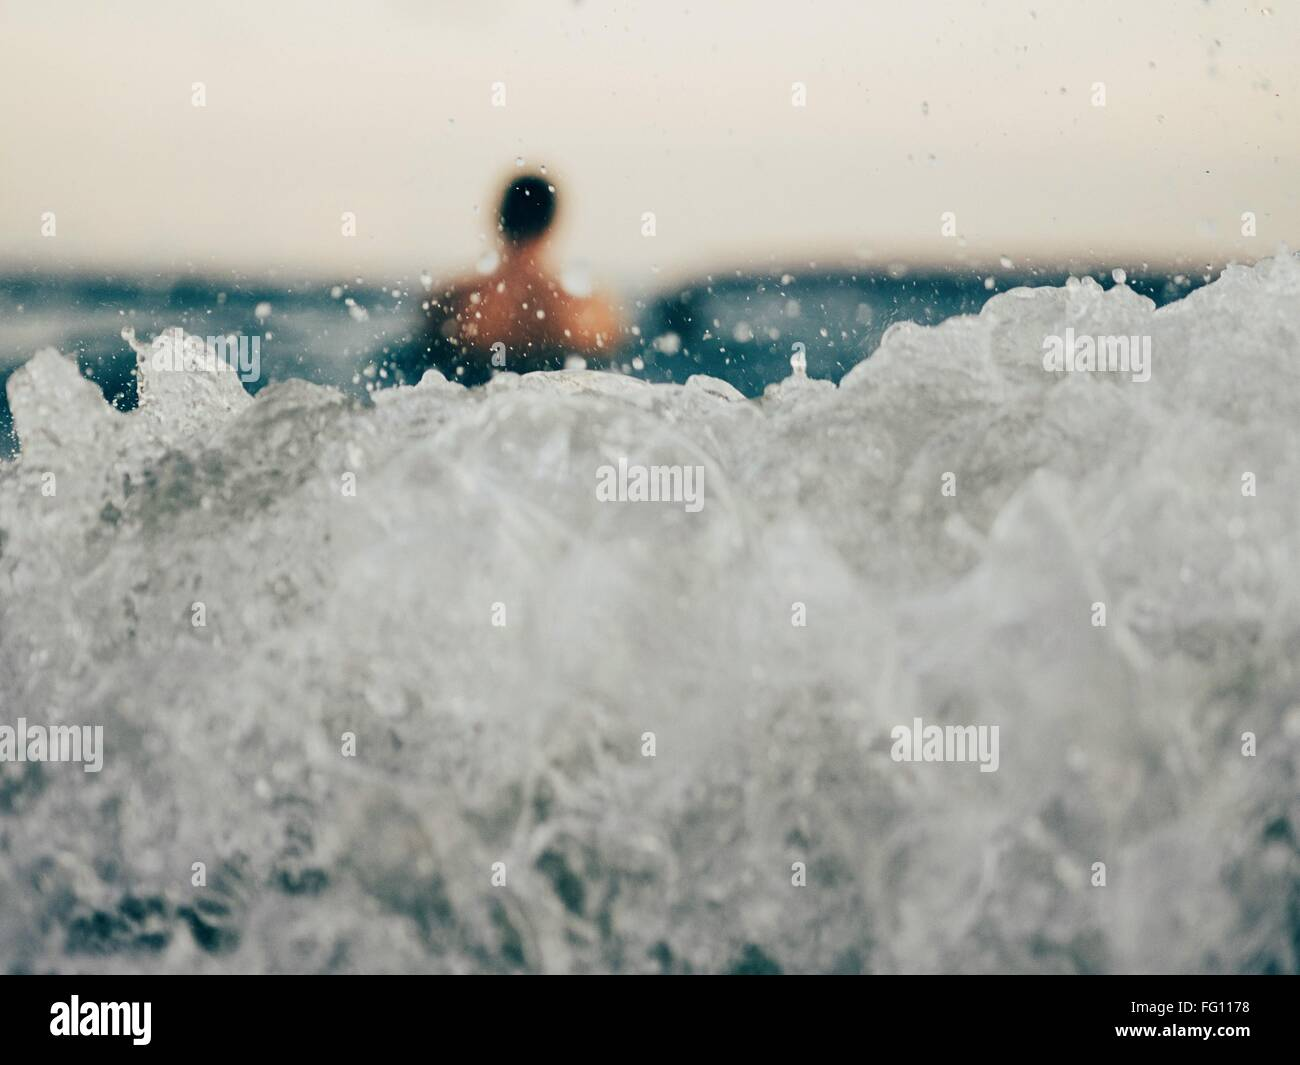 Close-Up Of Wave With Blurred Man In Distance - Stock Image